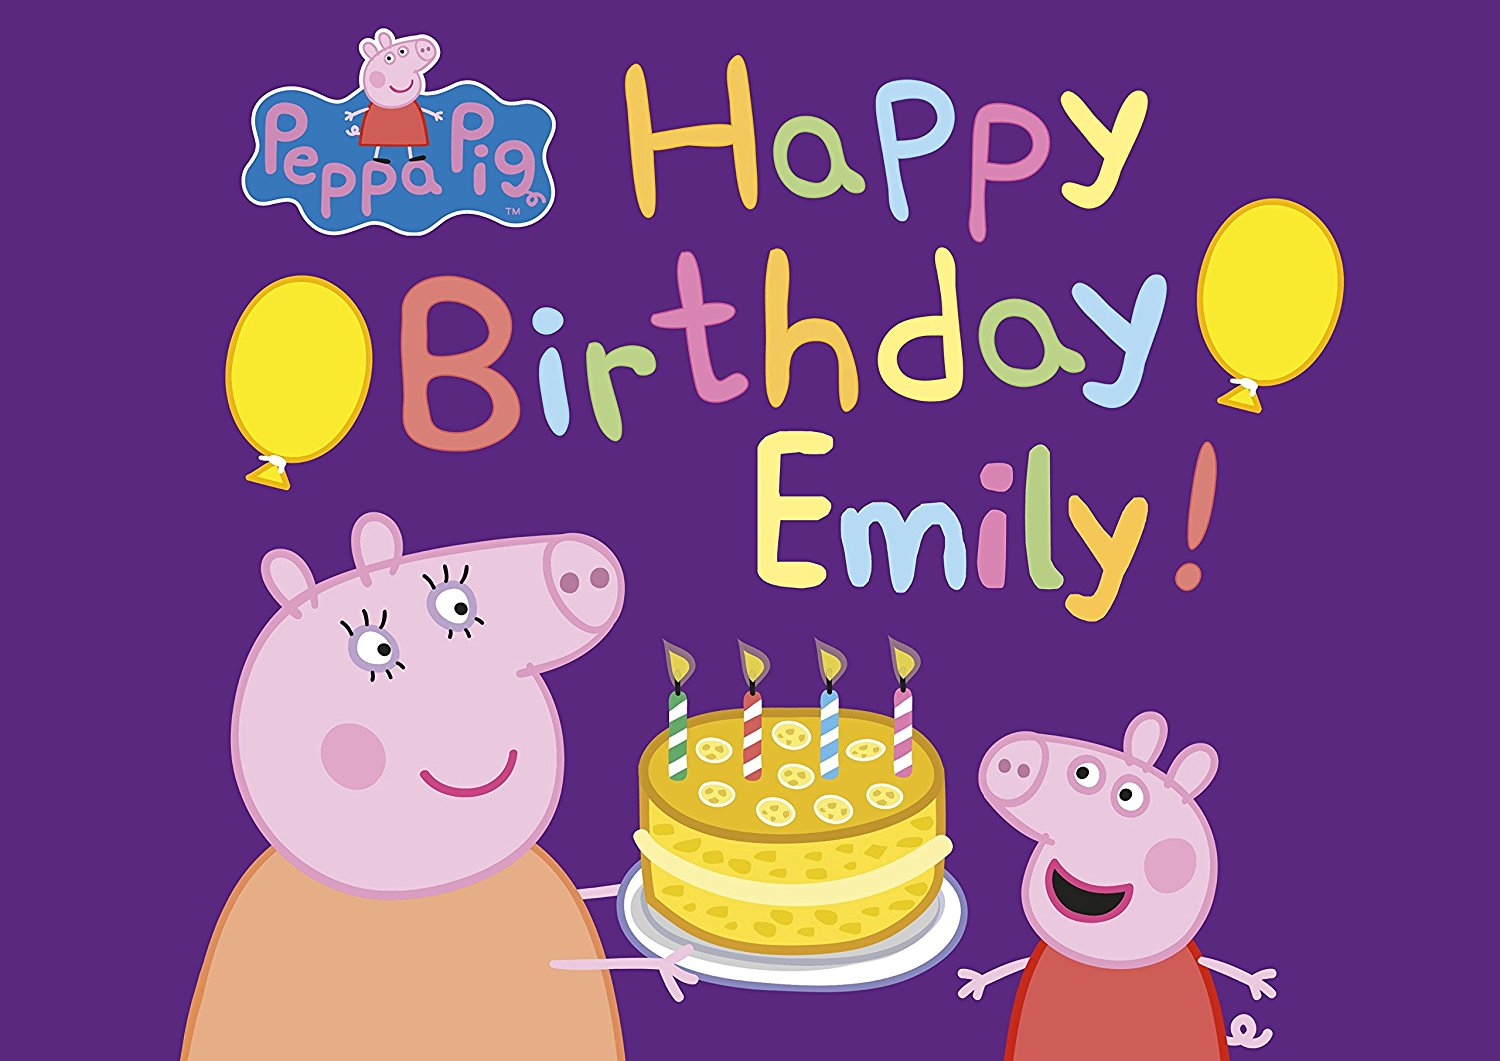 Peppa Pig Birthday Cake Personalized Cake Topper Icing Sugar Paper